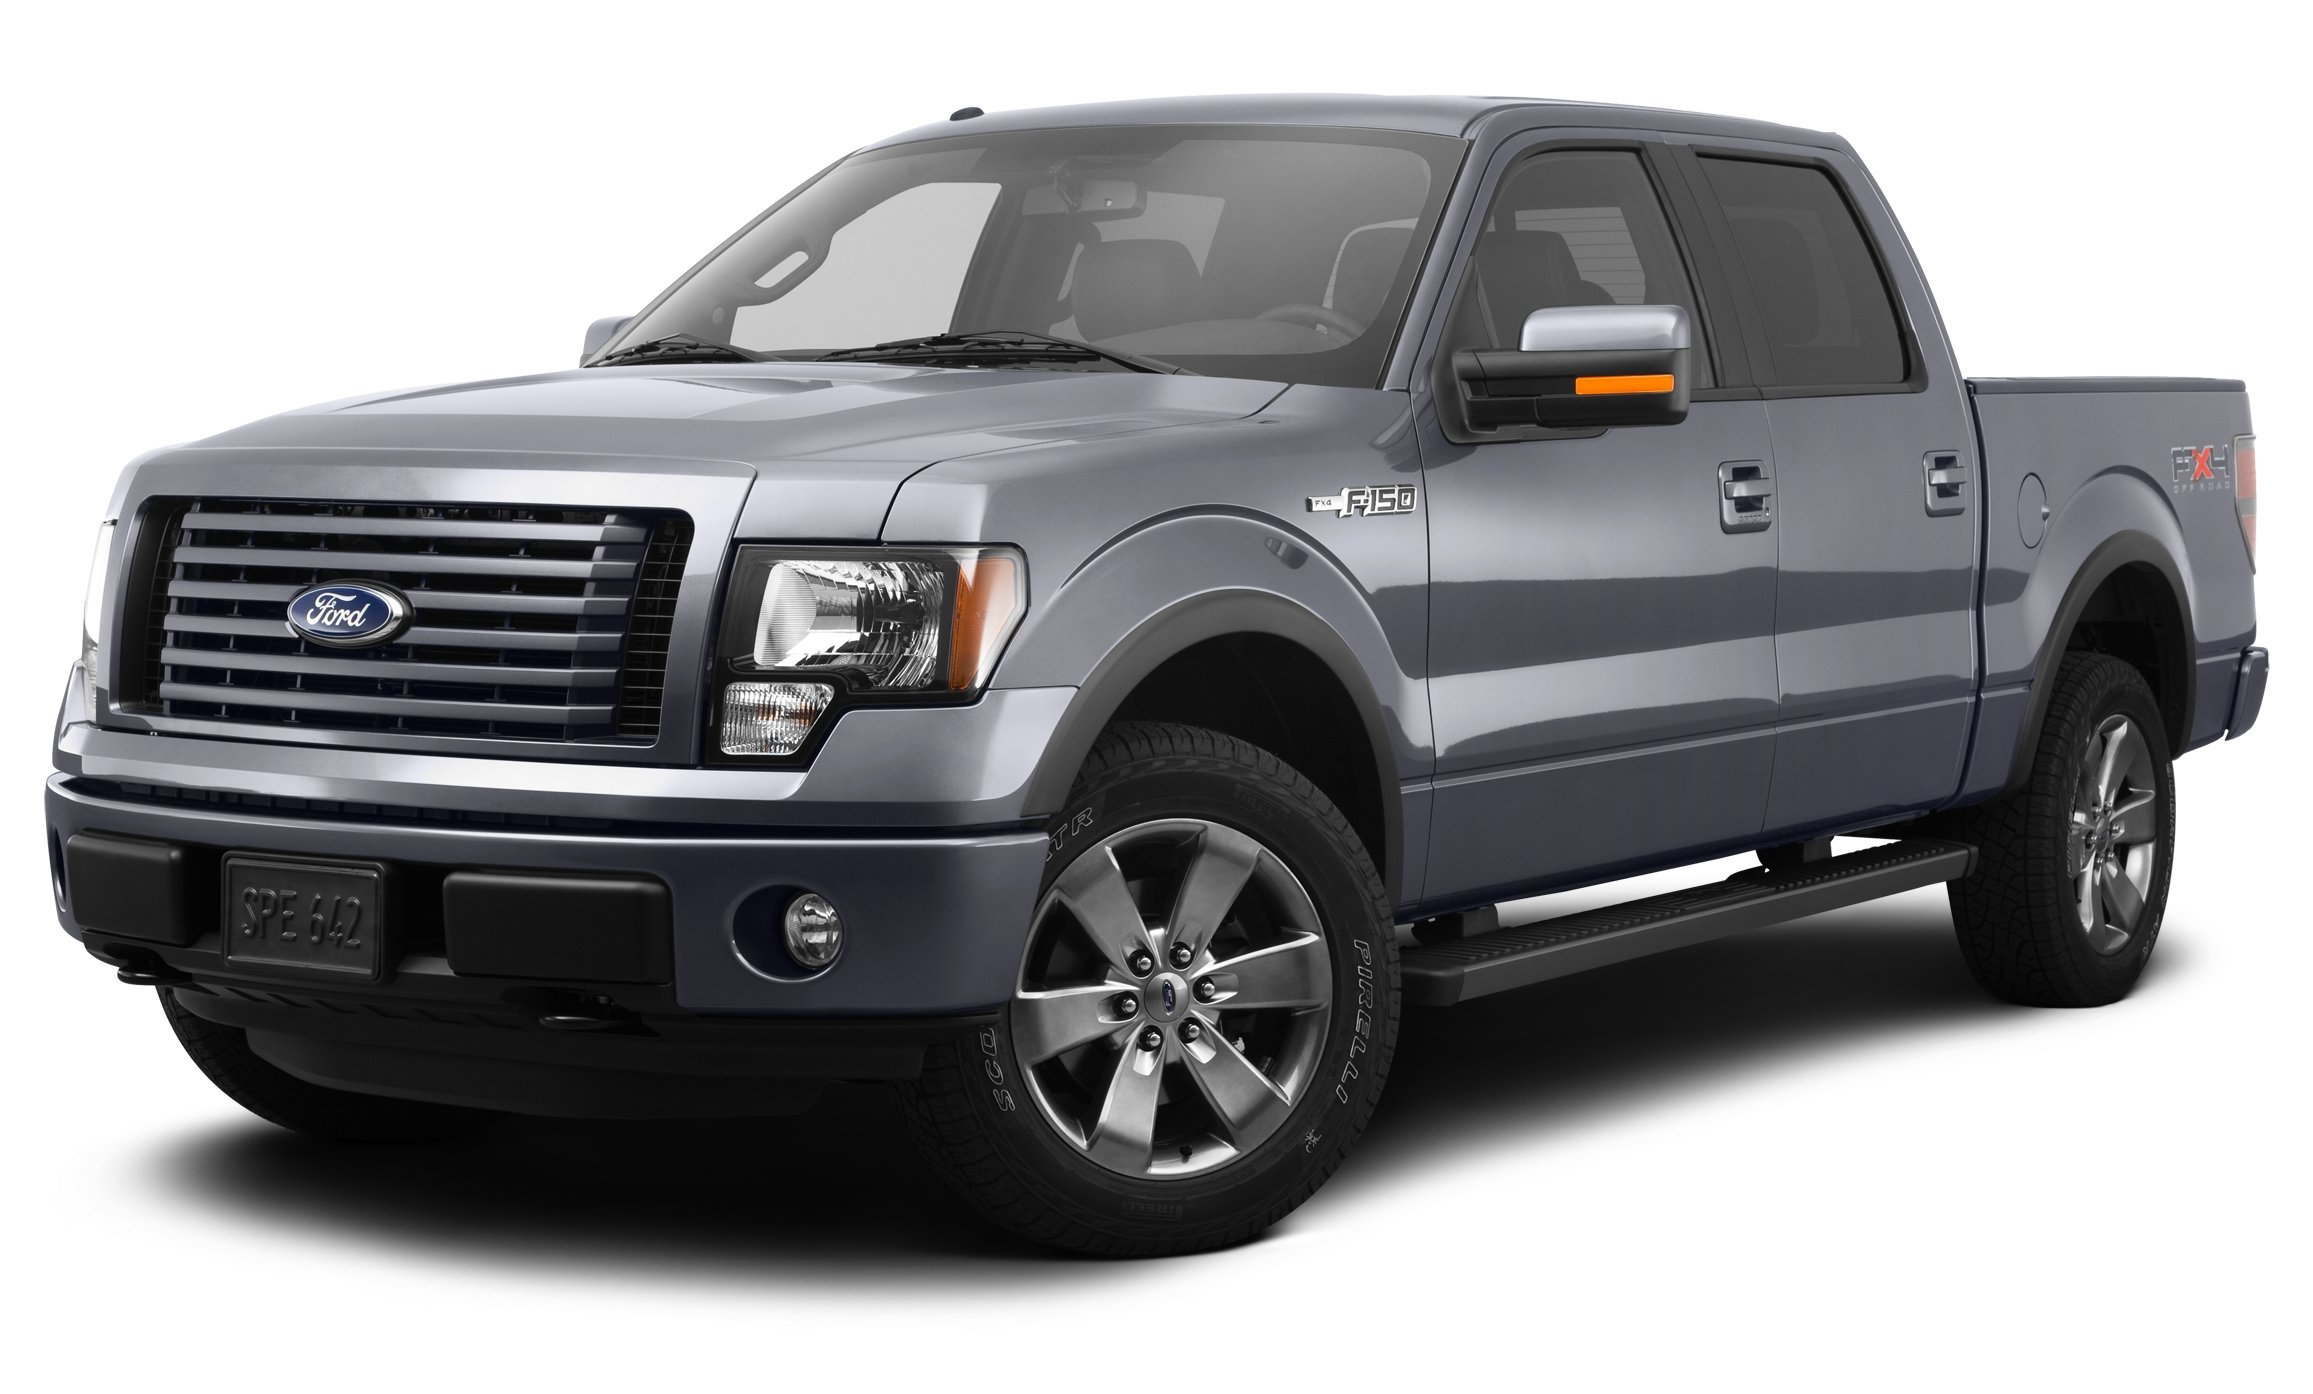 2011 ford f 150 fx2 2 wheel drive supercrew 145